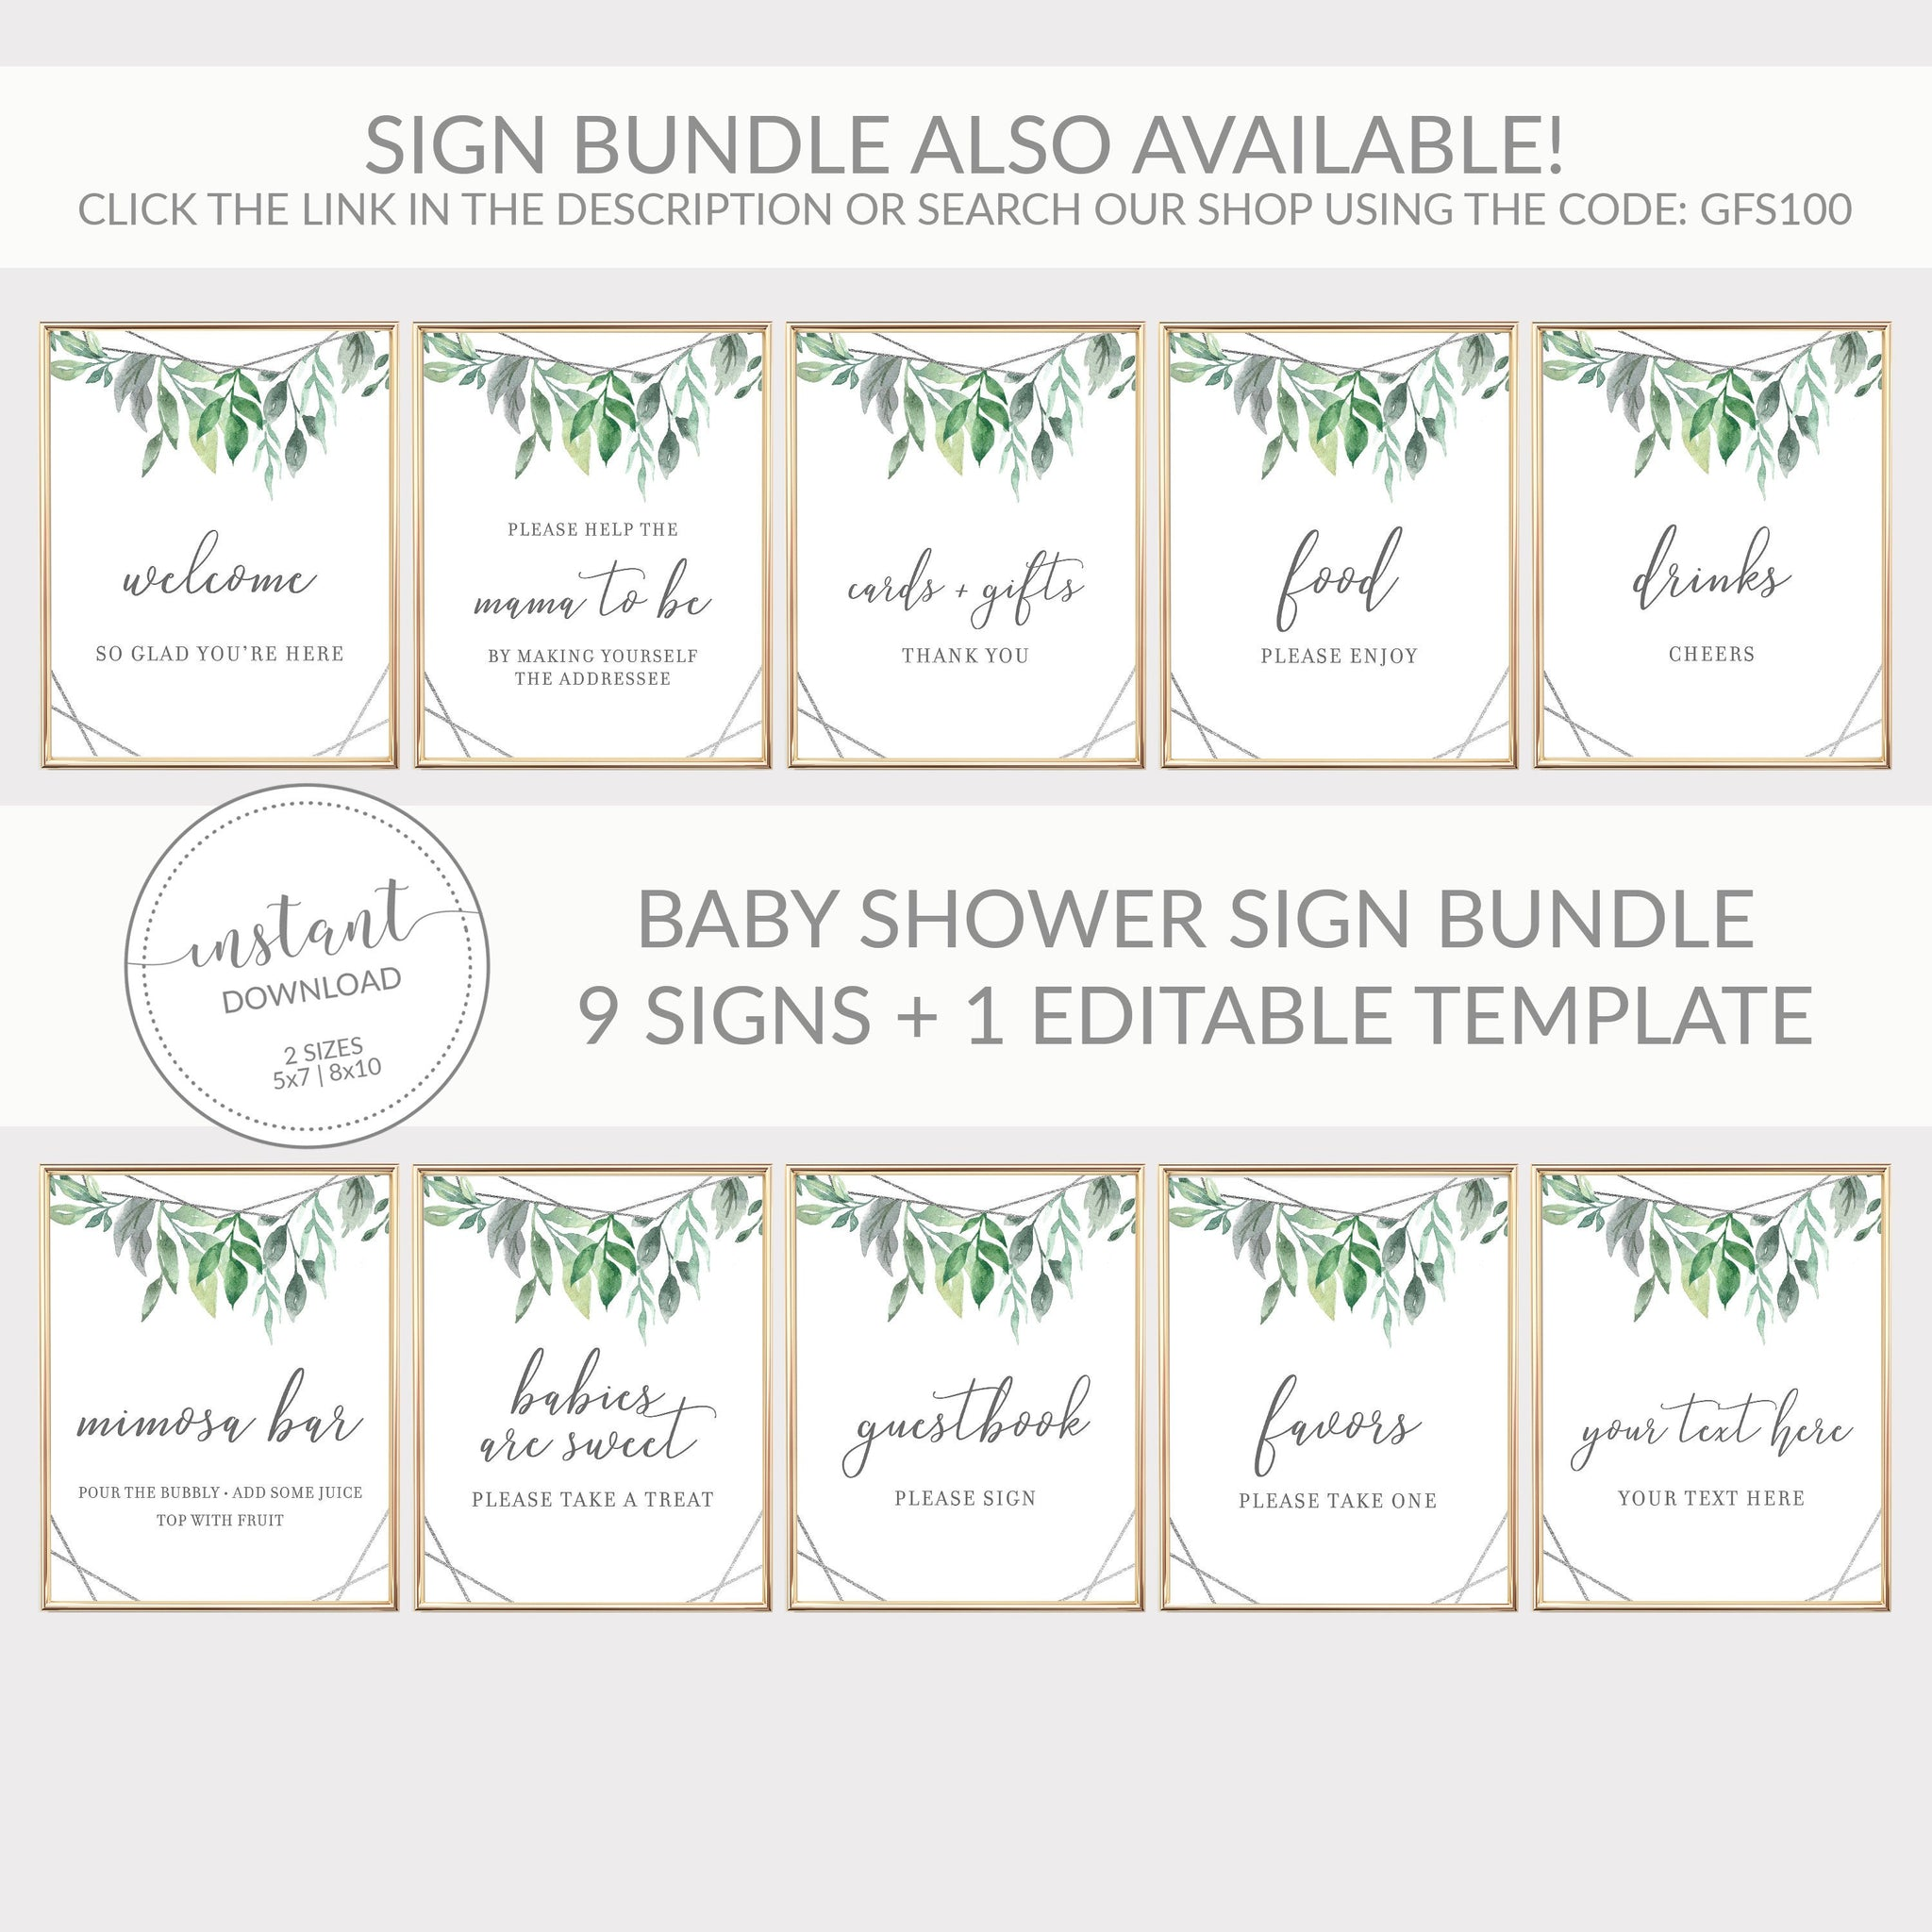 Geometric Silver Greenery Printable Favors Sign INSTANT DOWNLOAD, Birthday, Bridal Shower, Baby Shower, Wedding Decorations - GFS100